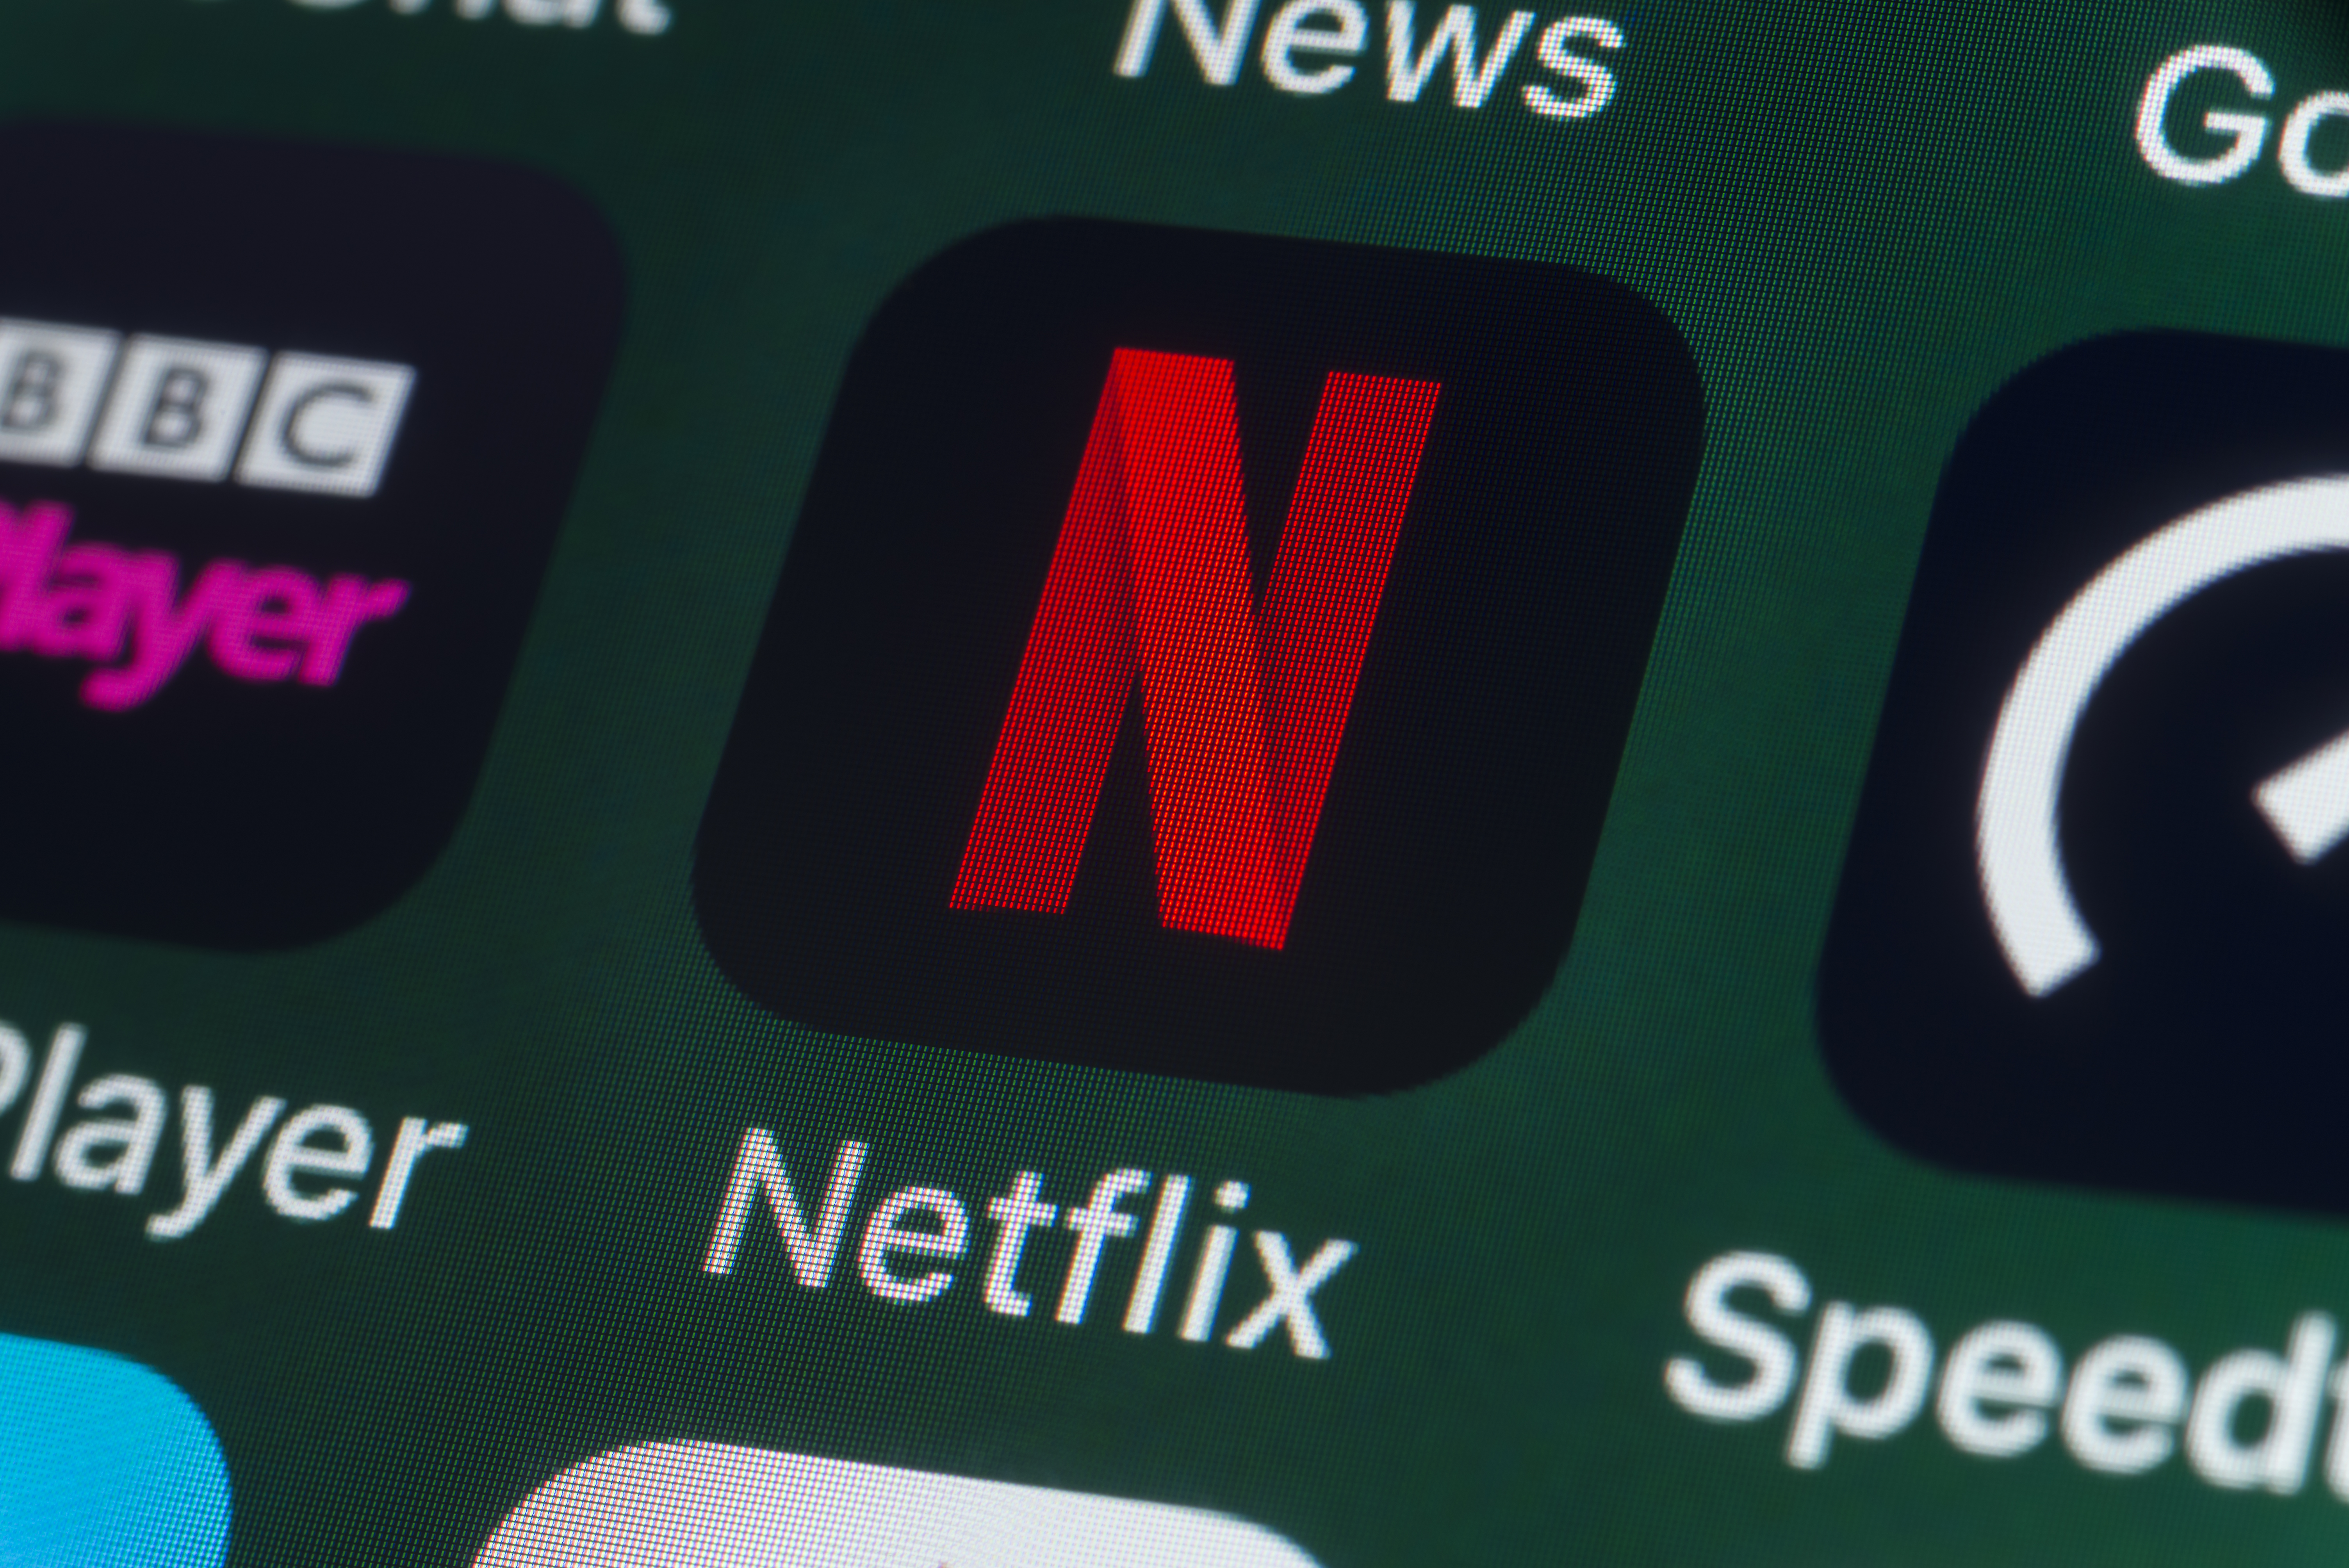 Netflix debuts free tier for Android users in Kenya